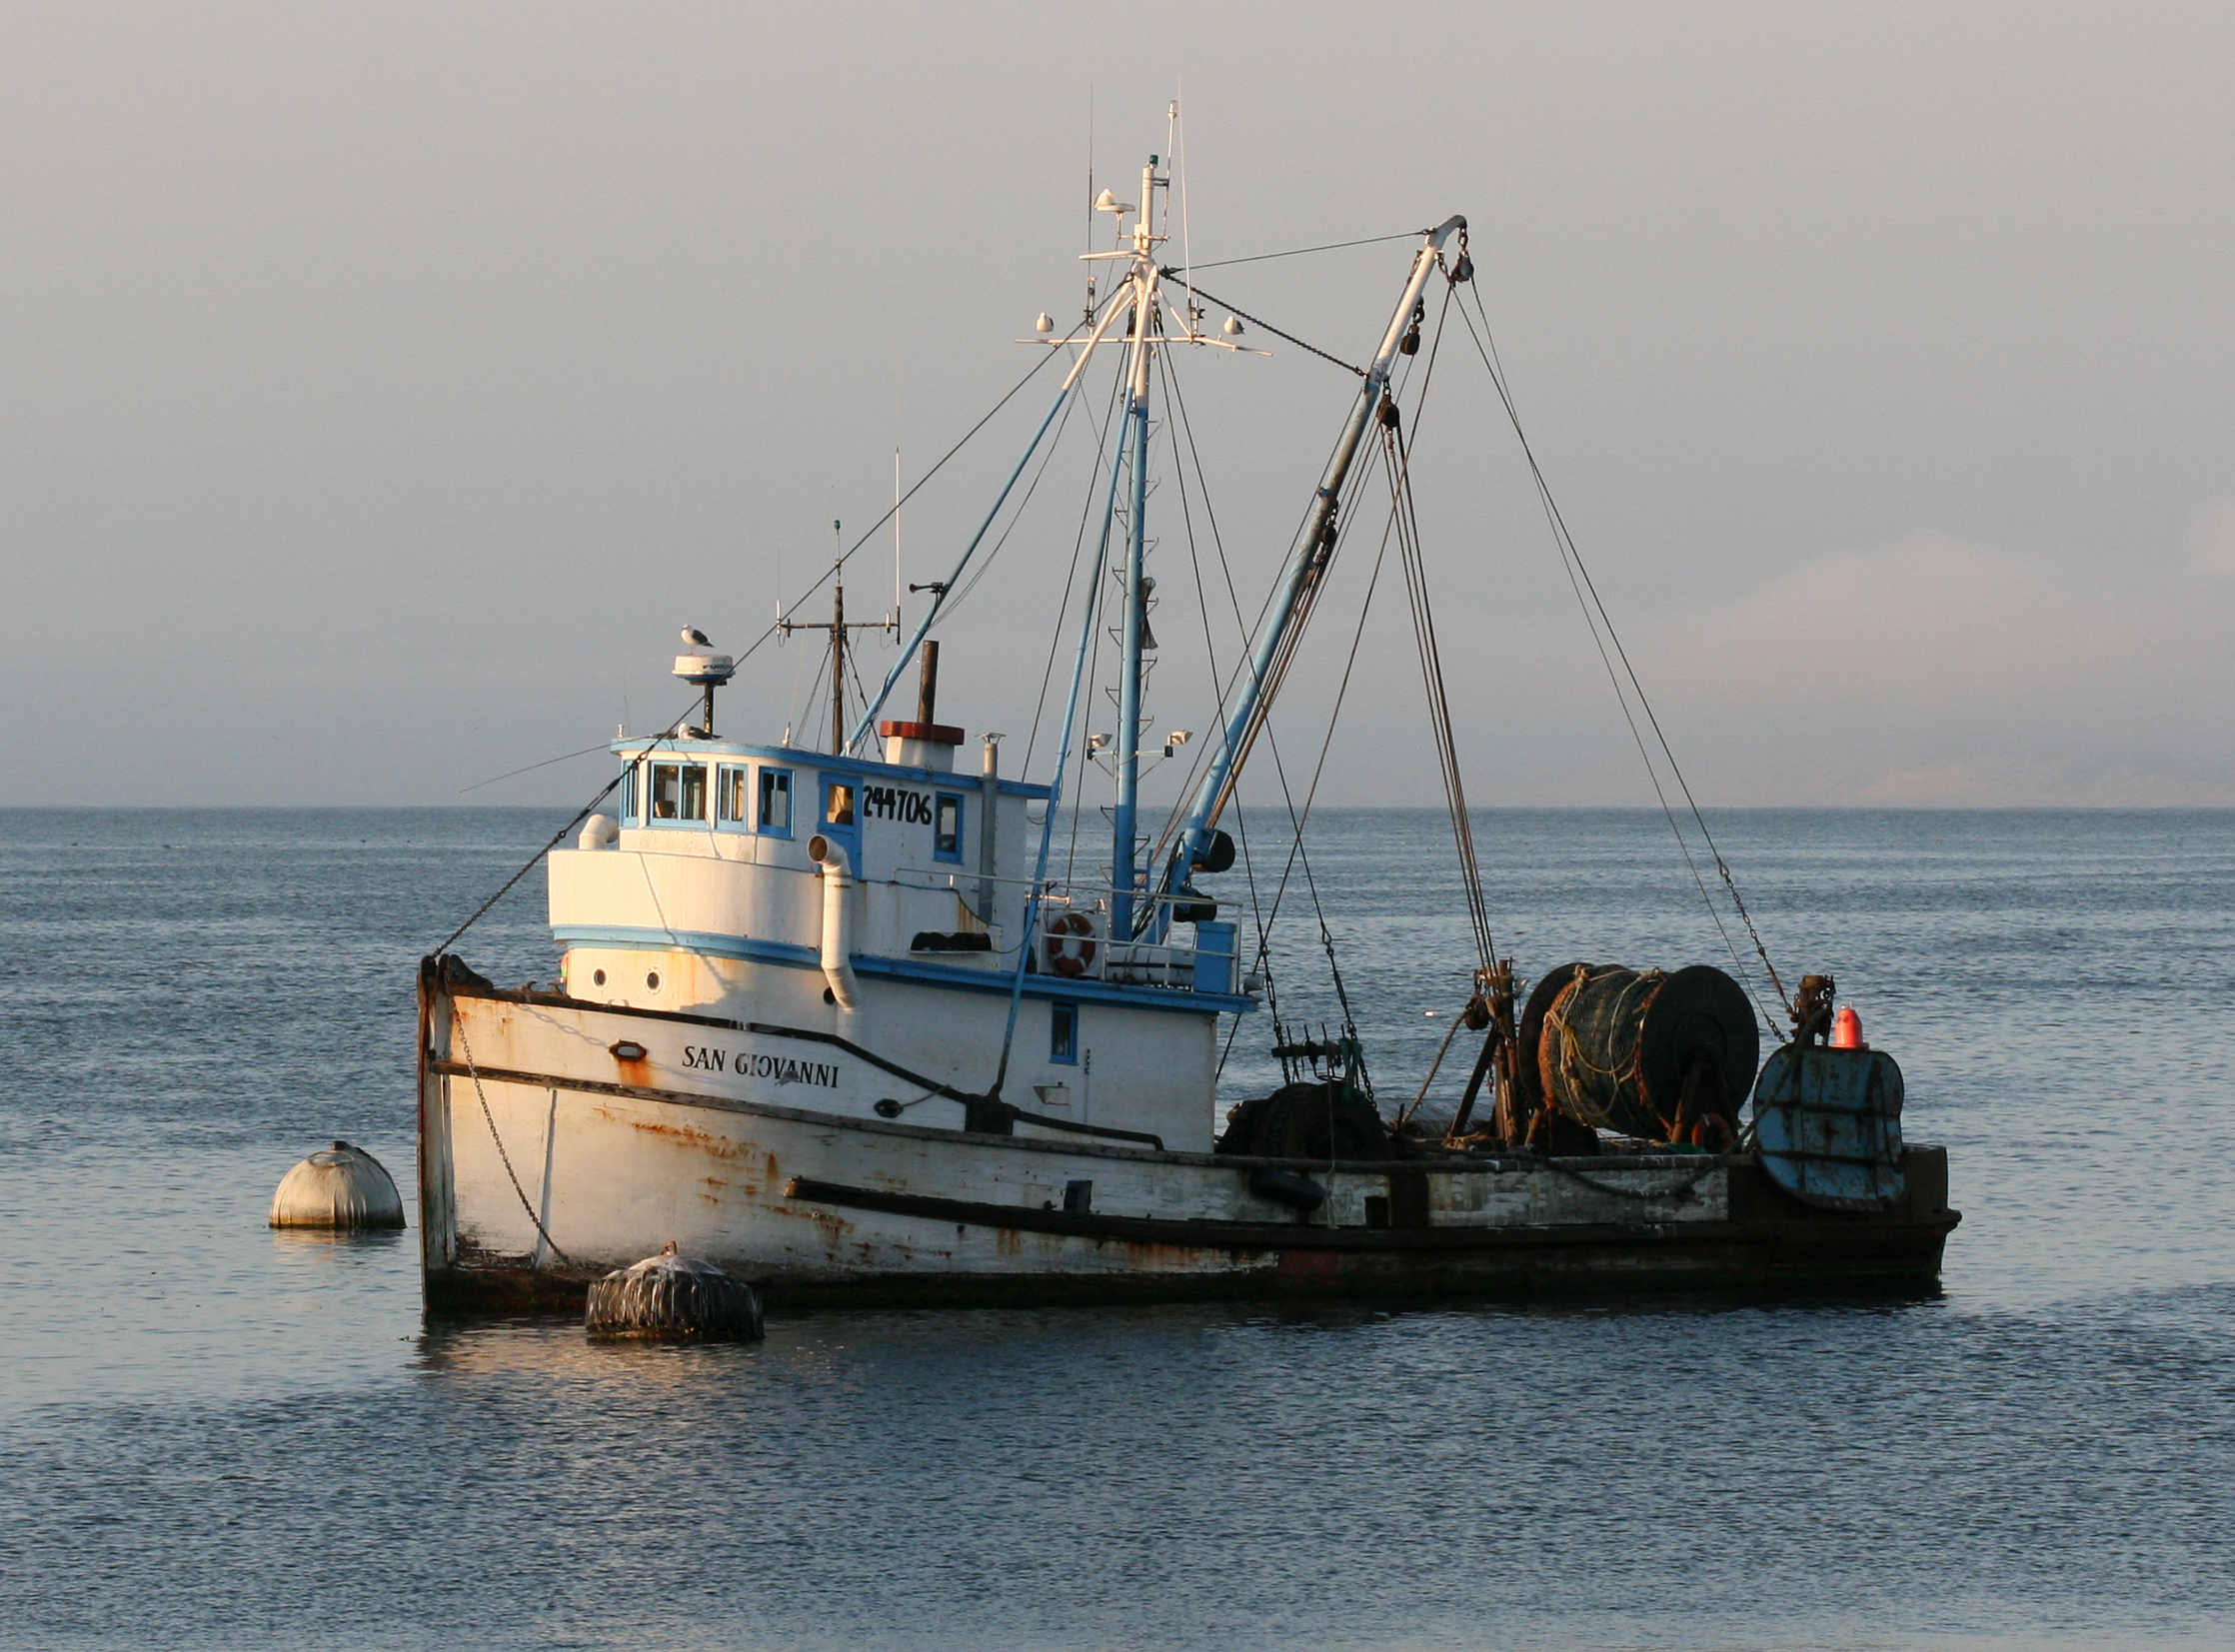 Fishing boat named San Giovanni on the ocean